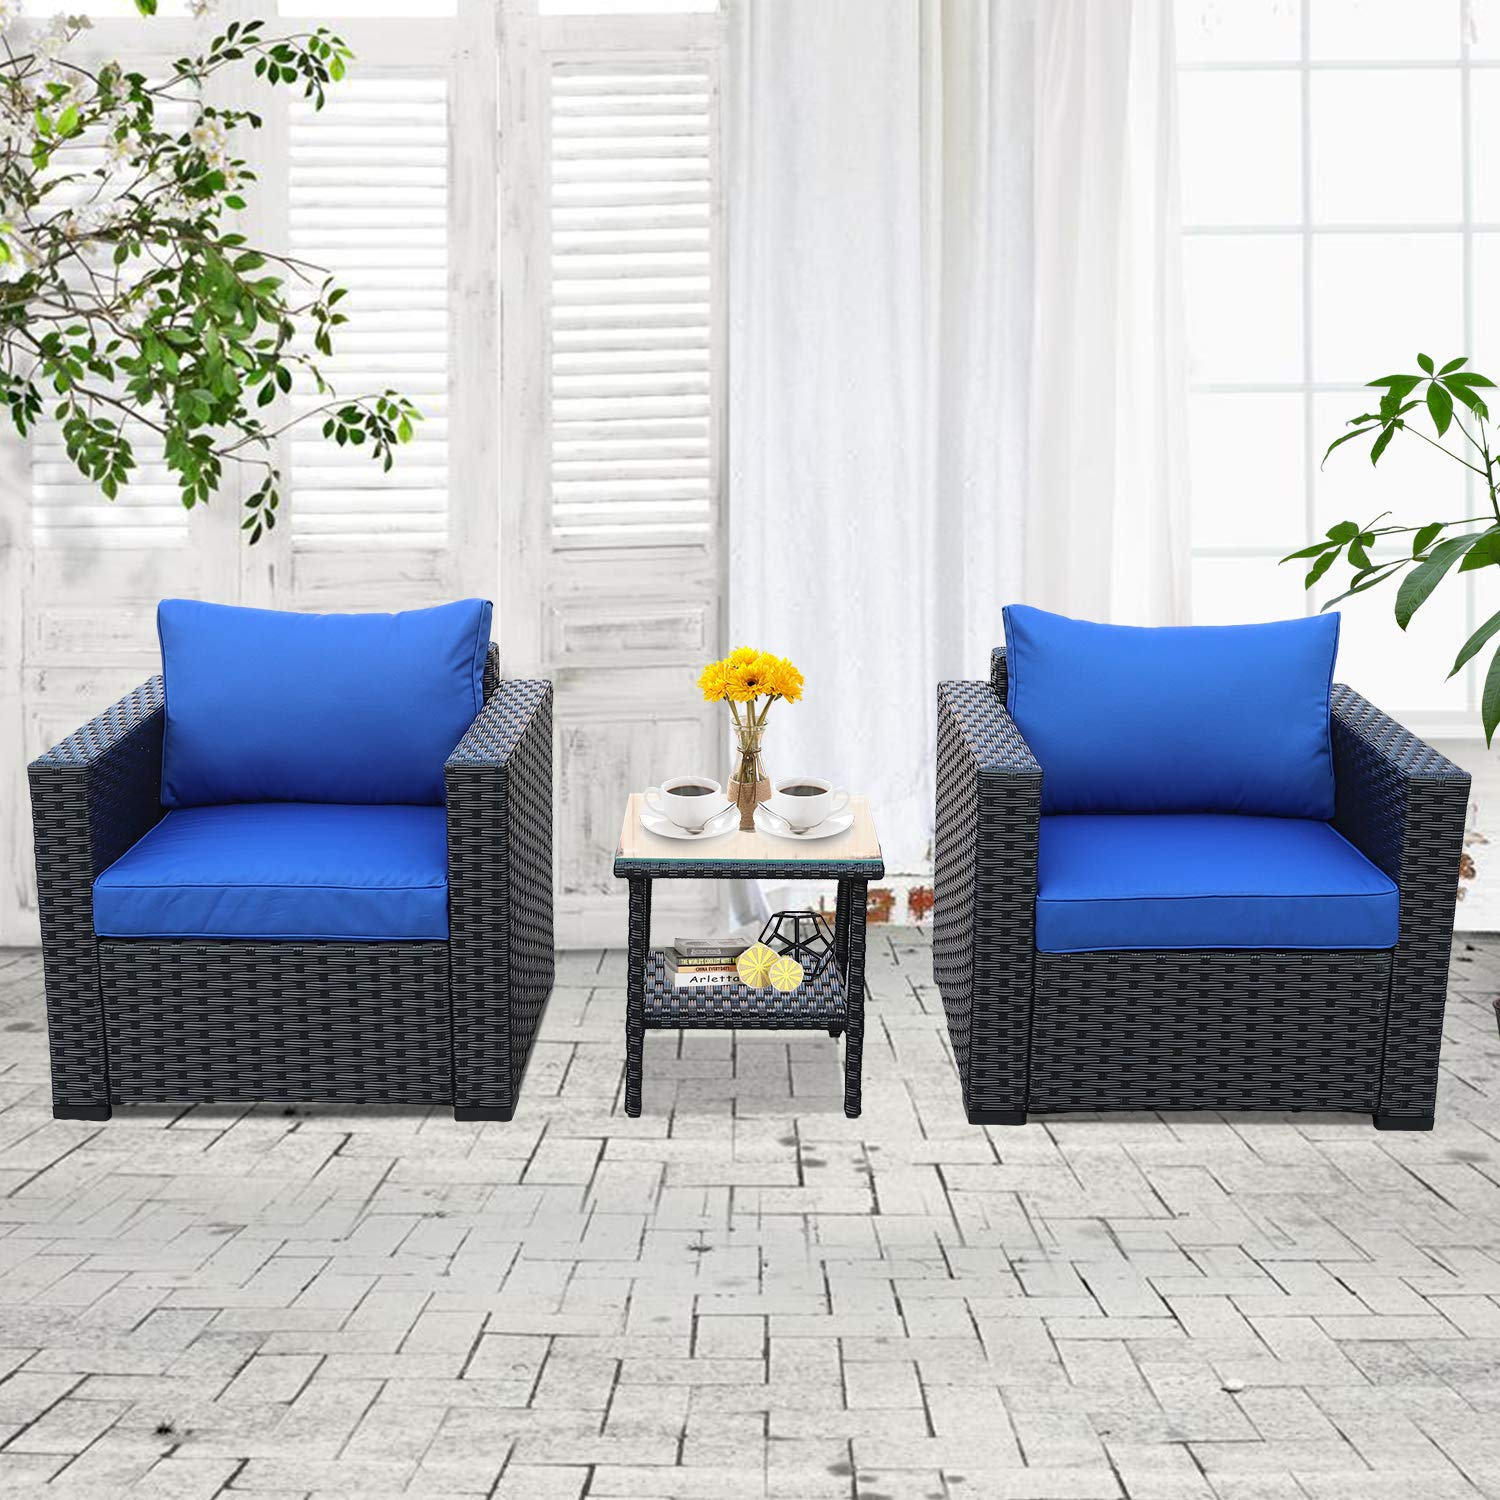 piece patio rattan wicker conversation chair set blue outdoor accent table single armchair sofa and side furniture black royal garden burgundy runner storage chest with matching